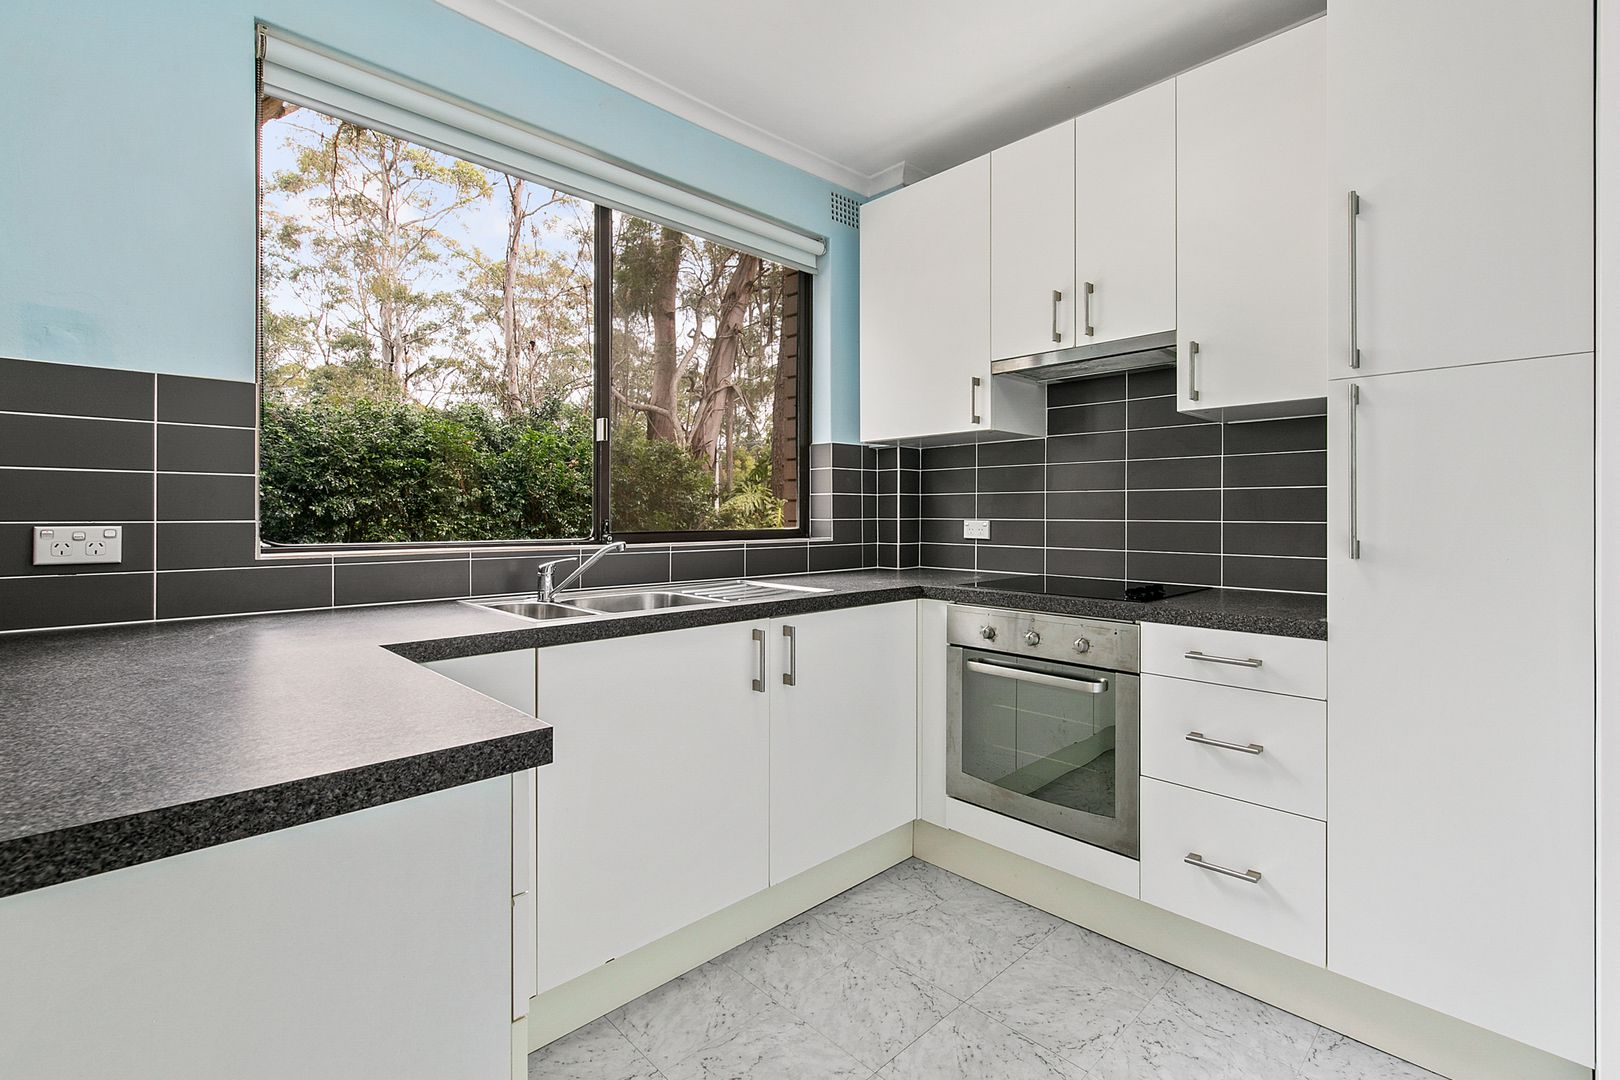 23/1292 Pacific Hwy, Turramurra NSW 2074, Image 2